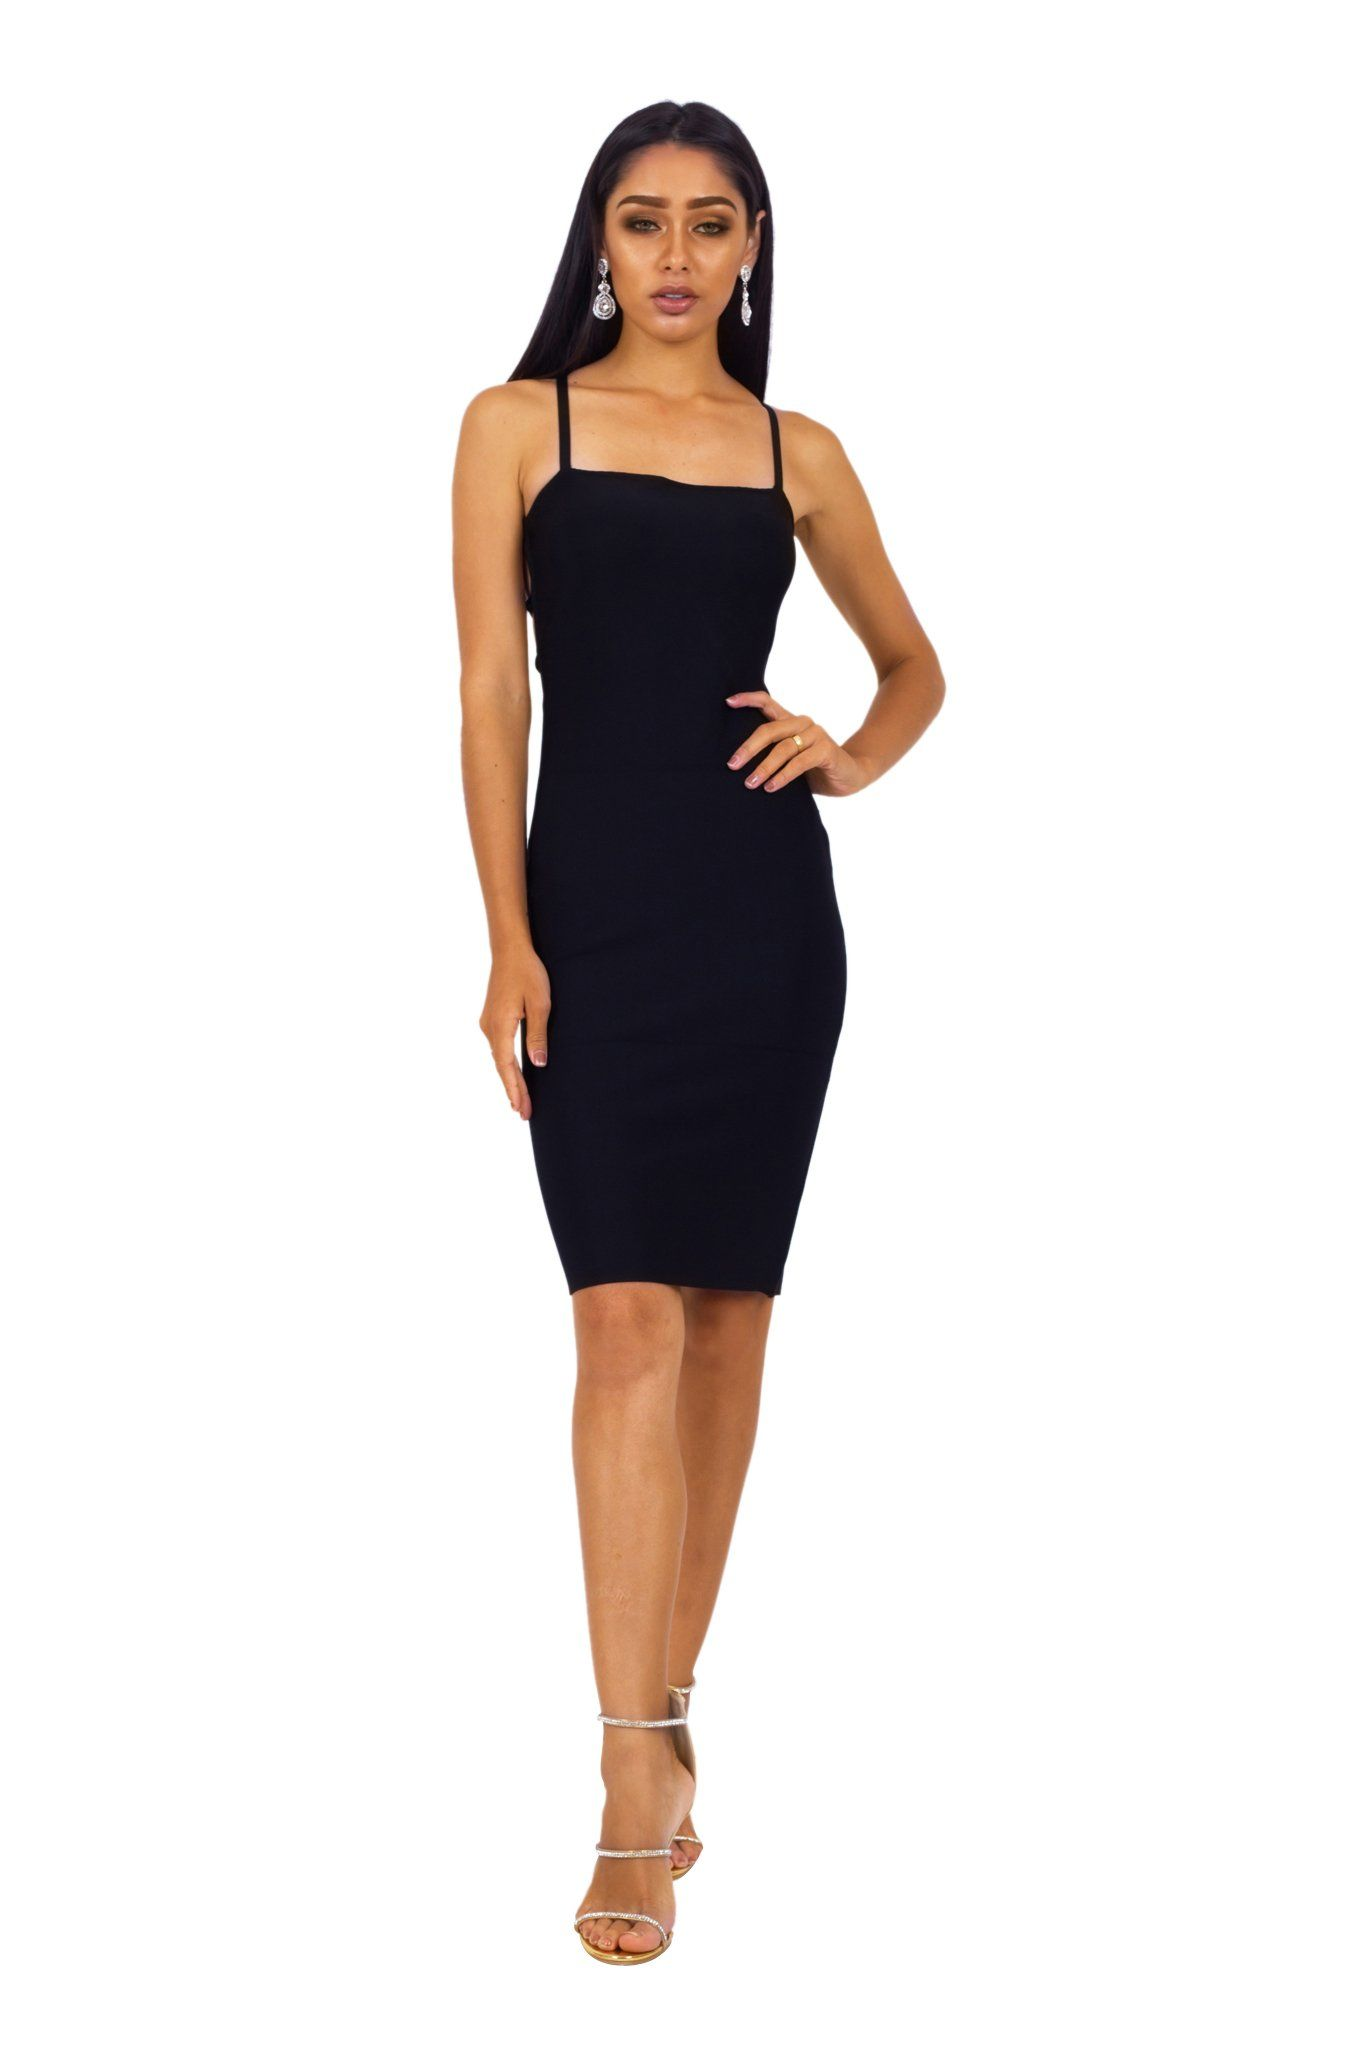 Black knee length bodycon bandage dress with square neckline and lace-up back design